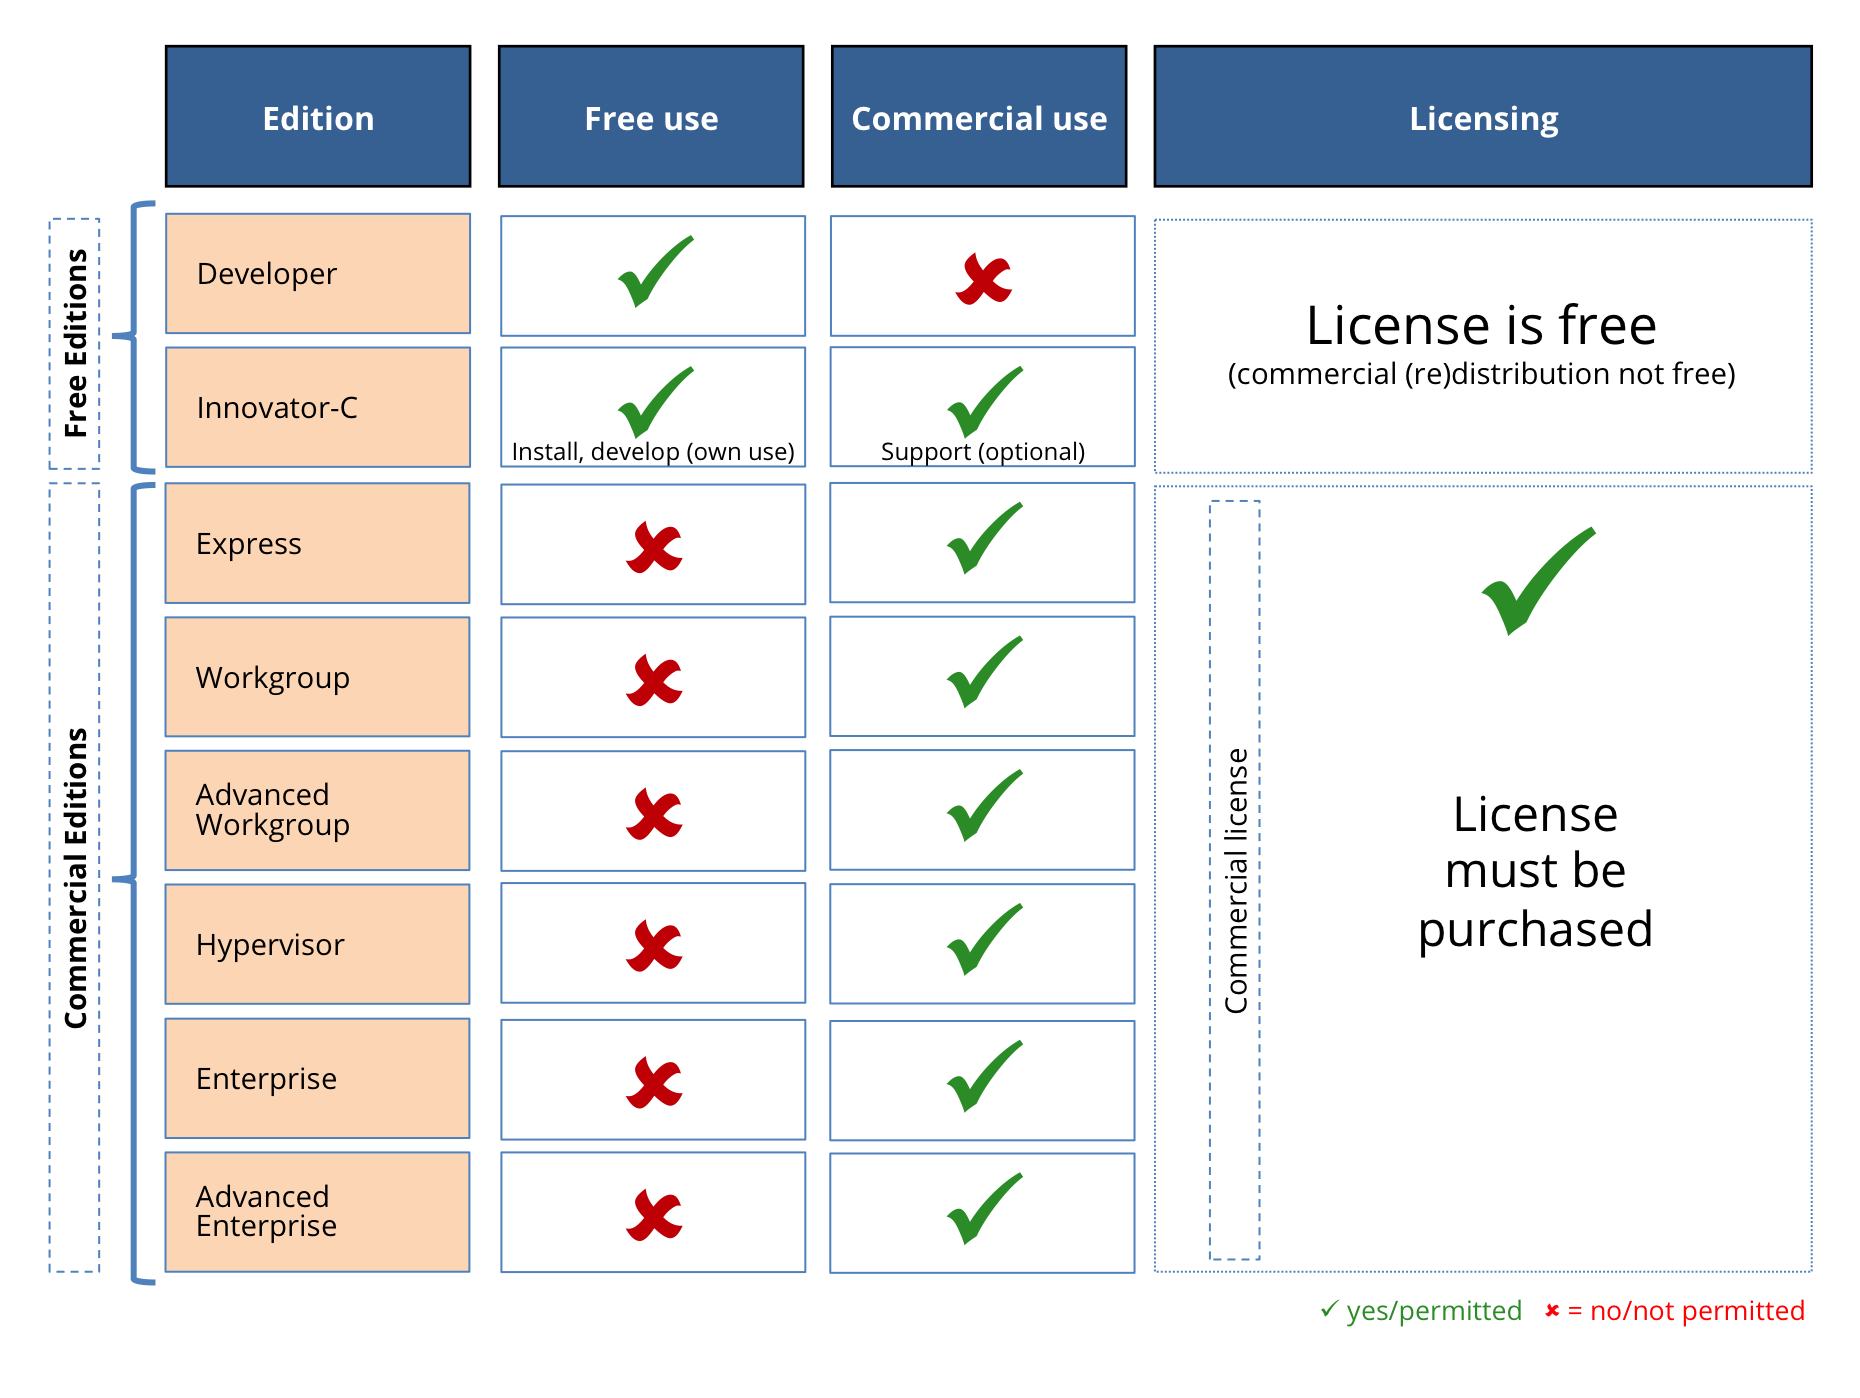 IBM Informix - Product Editions, Metrics And Licensing Restrictions